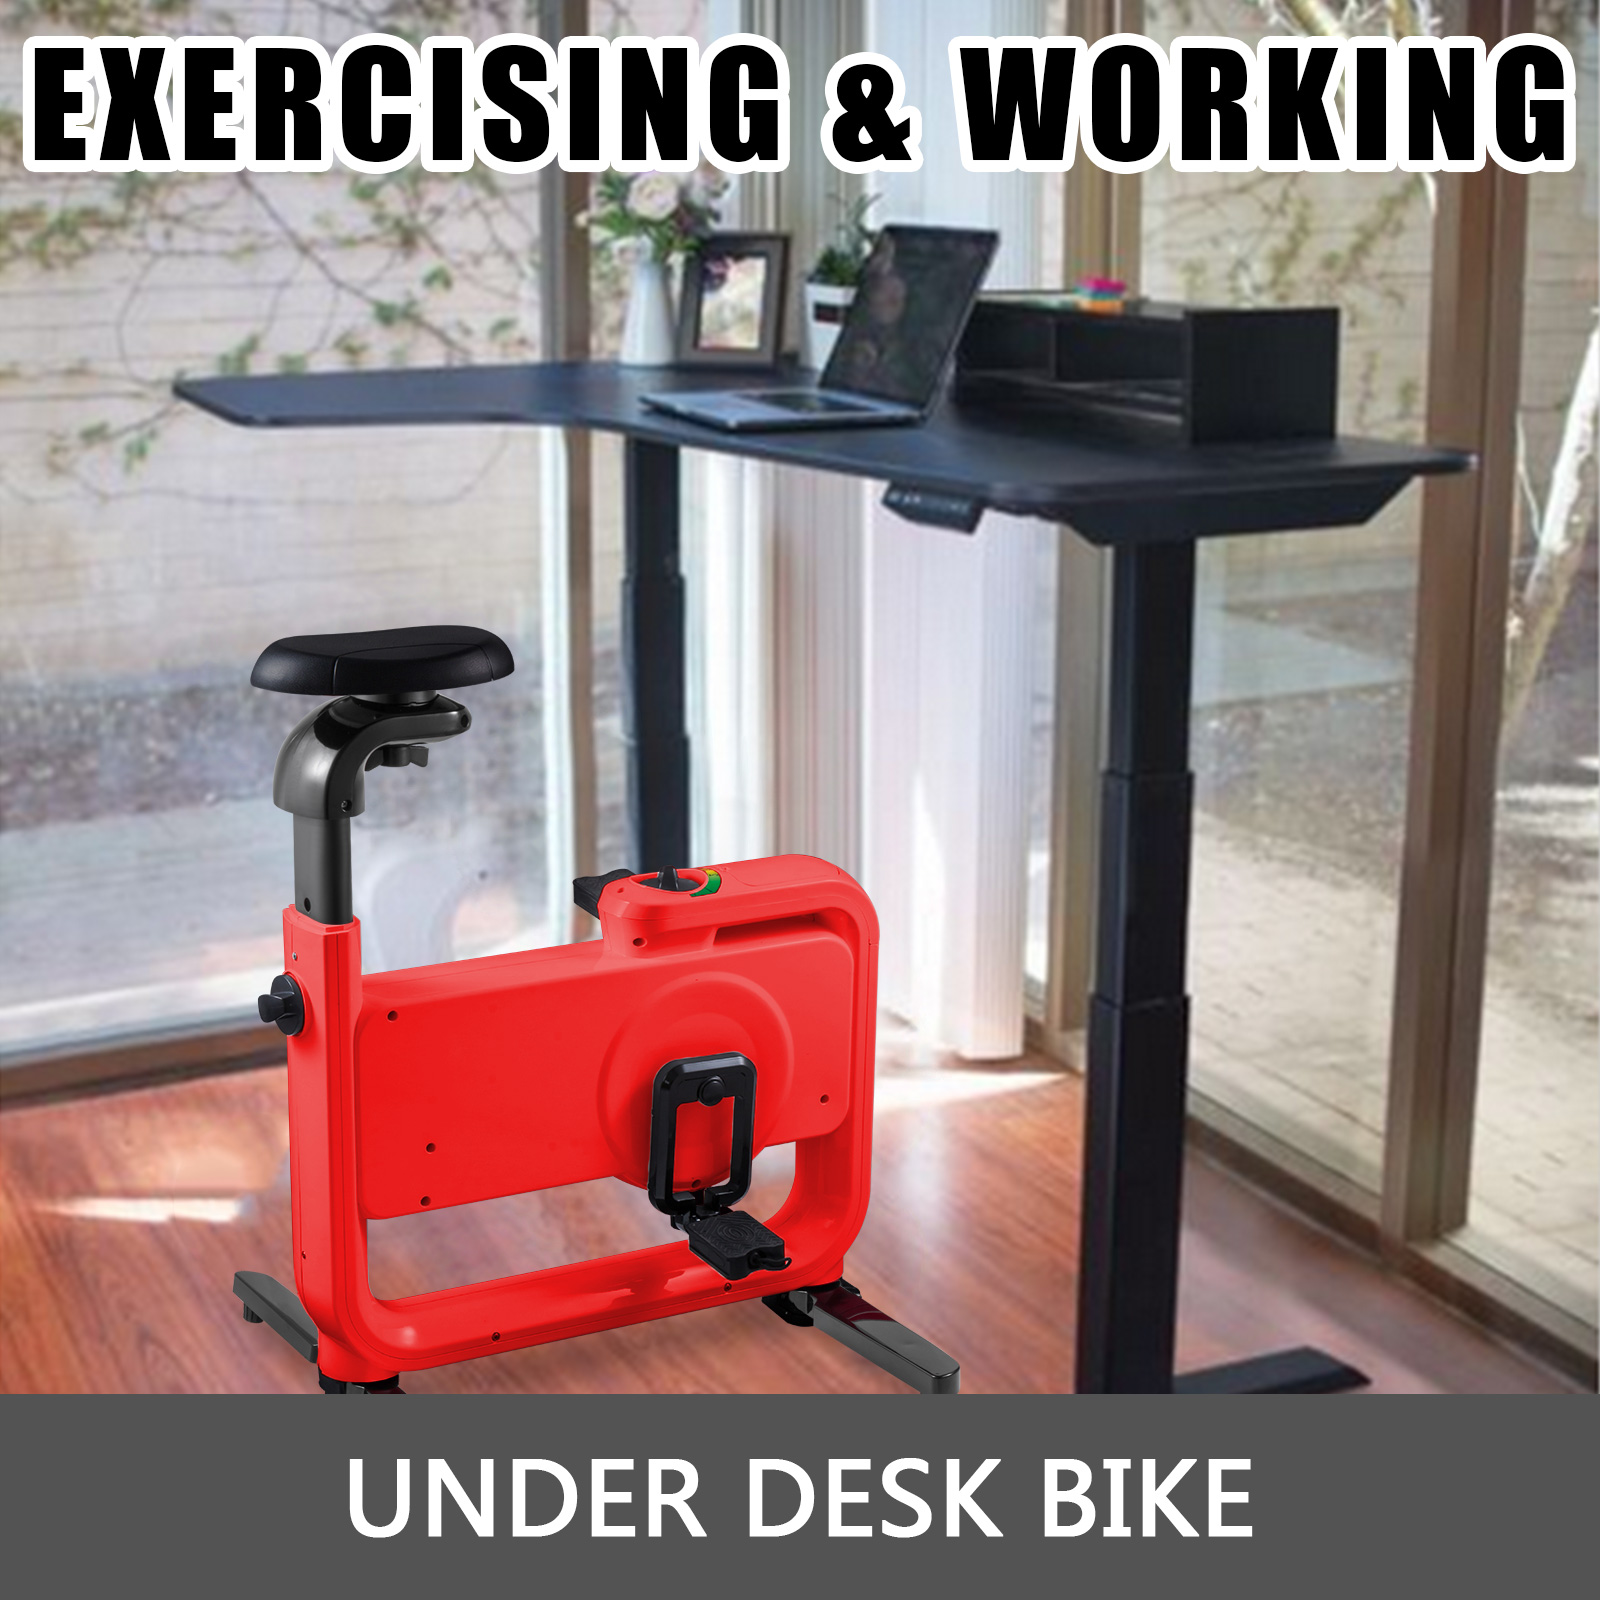 Multi-style-Magnetic-Exercise-Bike-office-Bicycle-under-Desk-Fitness-Cardio miniature 67